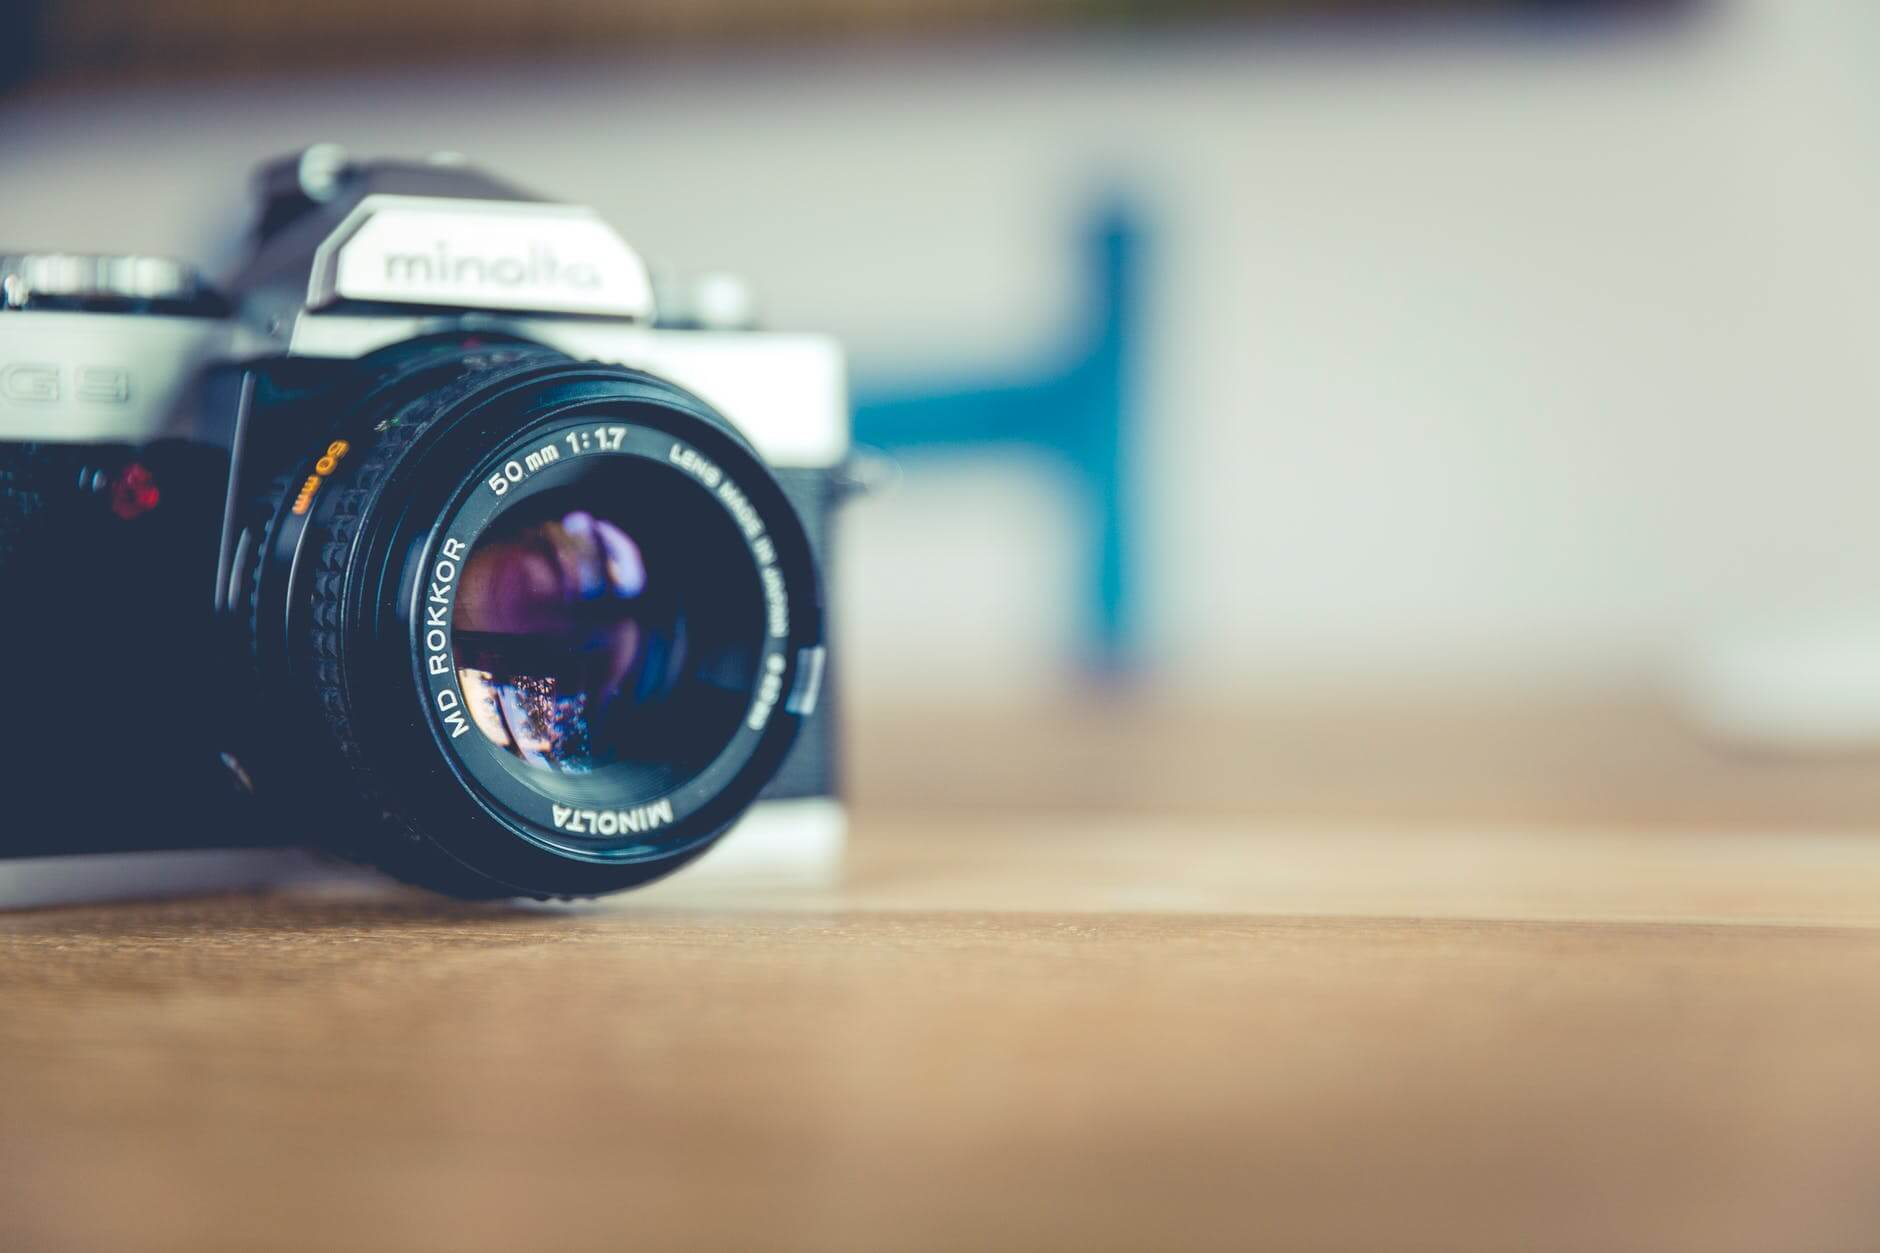 3 Tips for Taking Photos to Get Your House Sold! & 3 Tips for Taking Photos to Get Your House Sold! - Portable Storage ...